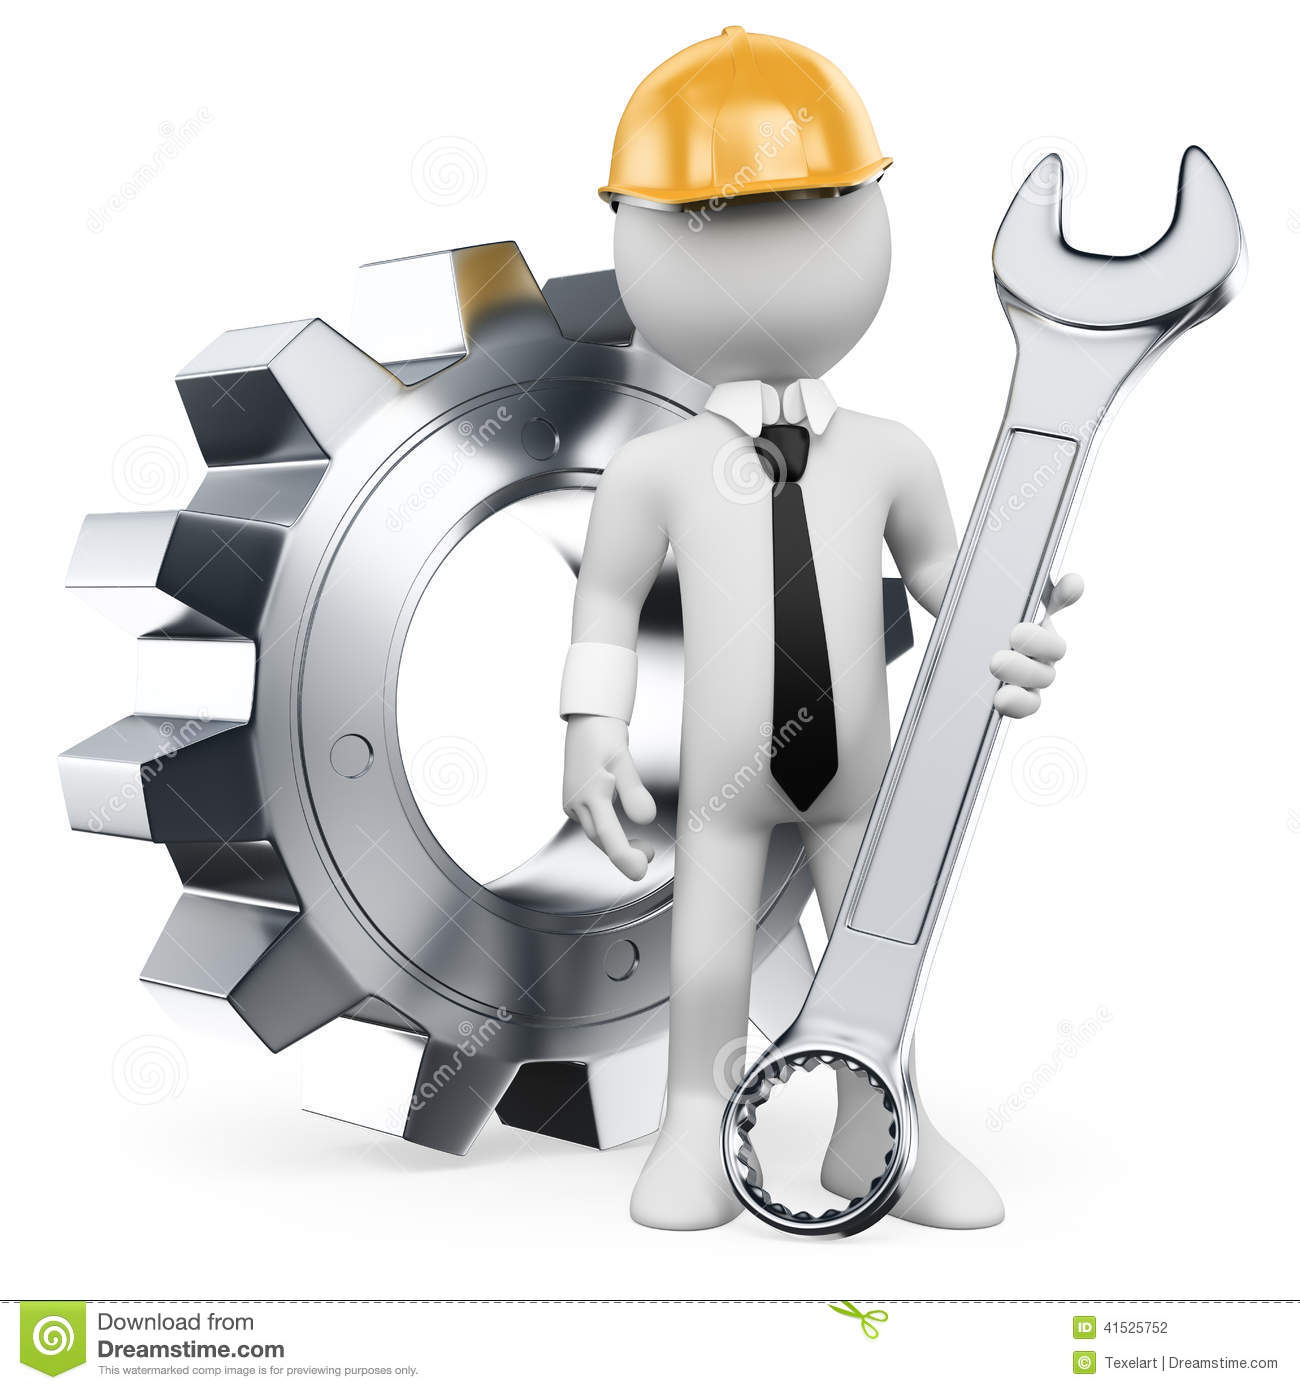 Mechanical clipart clip art Mechanical Engineering Clipart | Clipart Panda - Free ... clip art